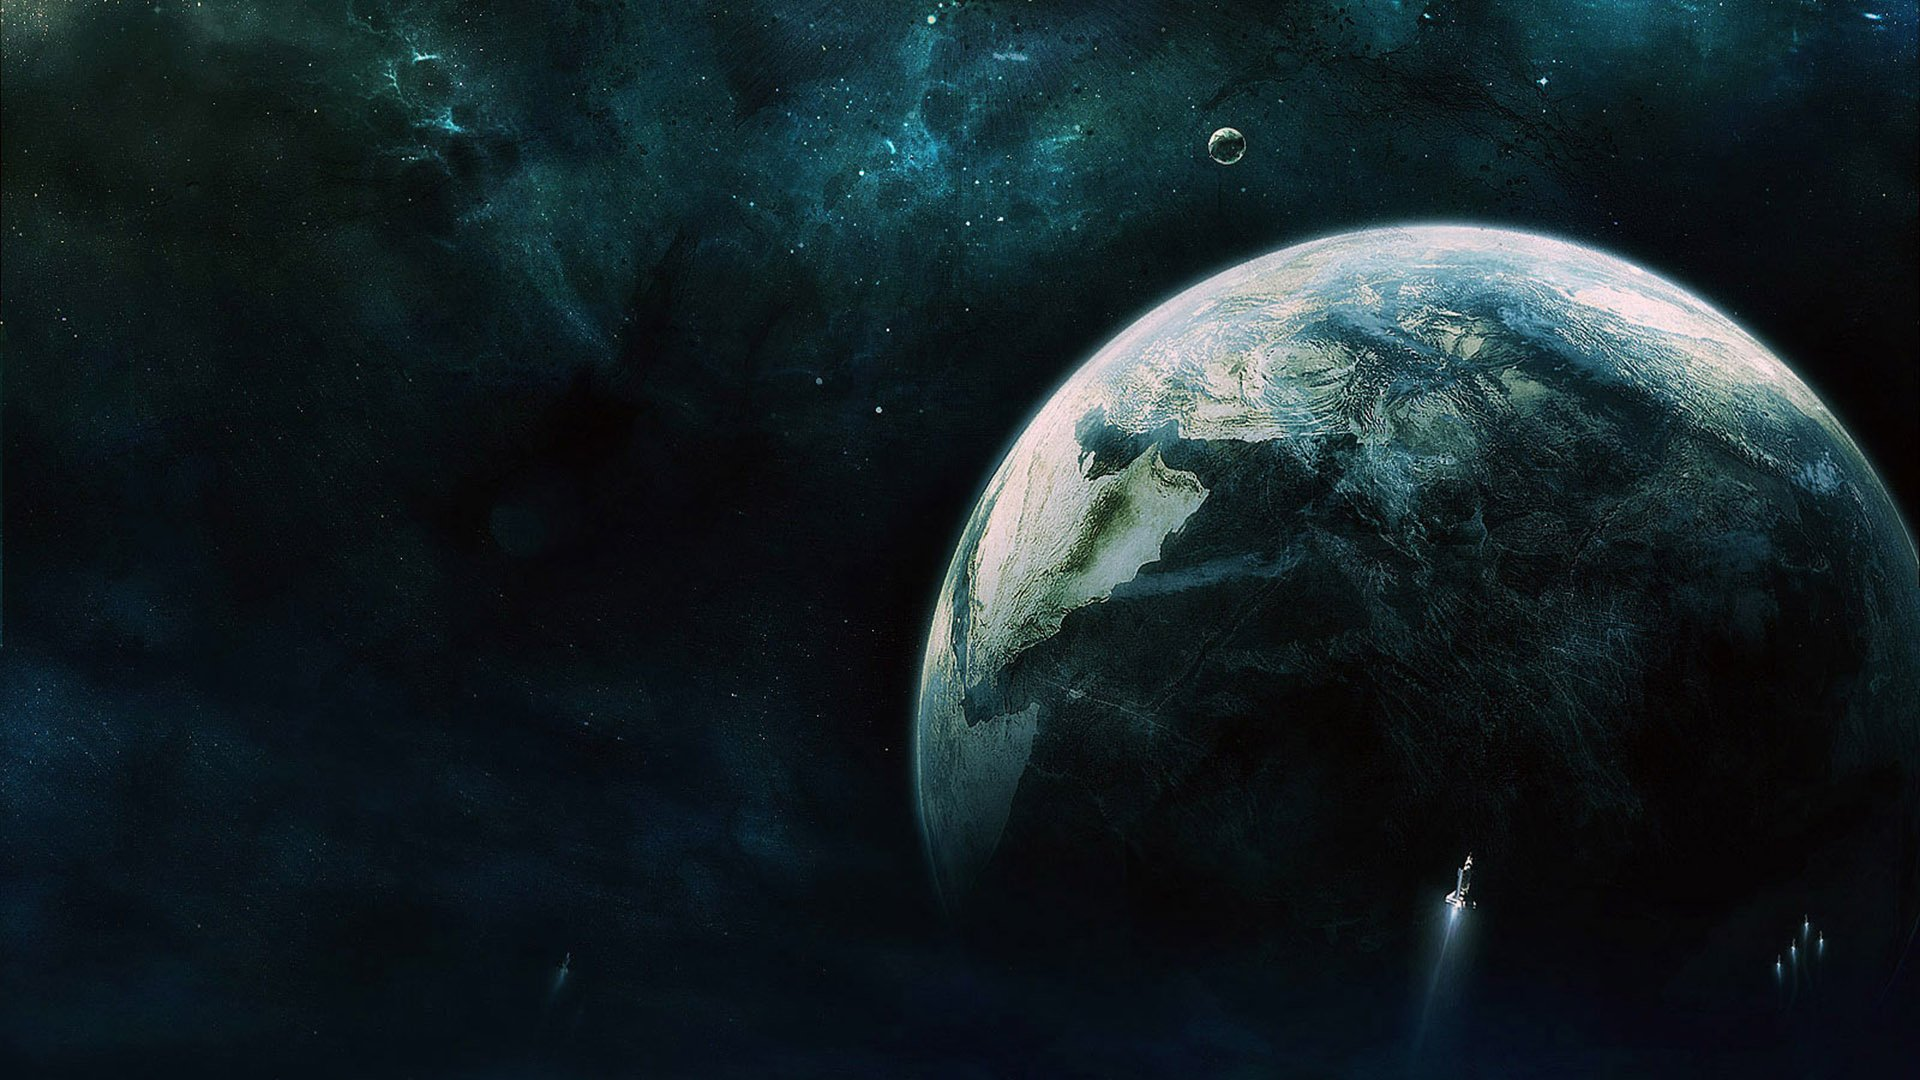 Cool Pictures Space Earth HD Wallpaper Cool Pictures Space Earth 1920x1080